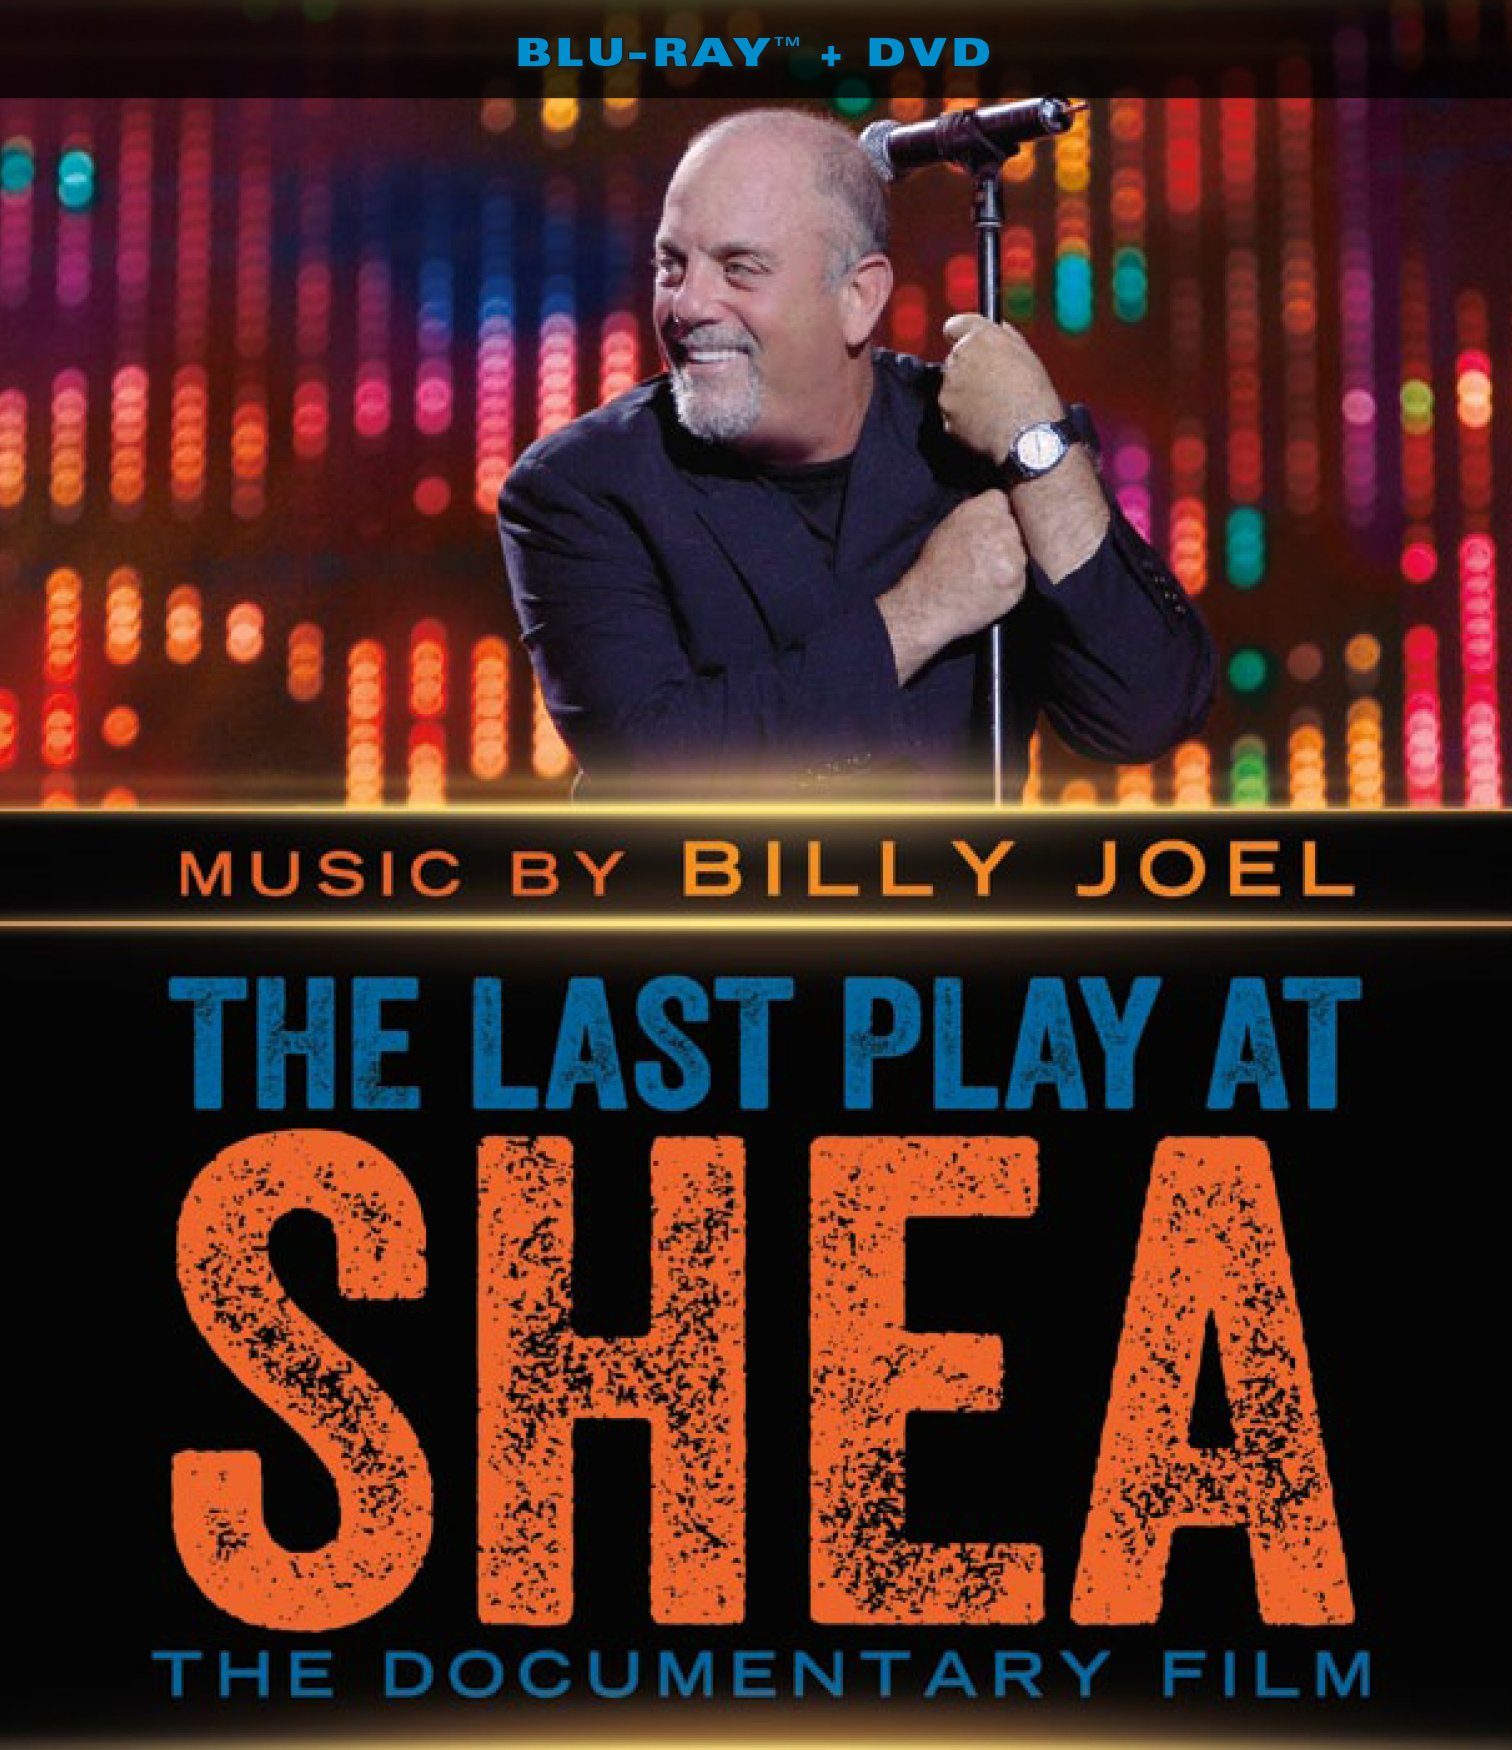 Blu-ray : Billy Joel - The Last Play at Shea (With DVD, Widescreen, 2 Disc)